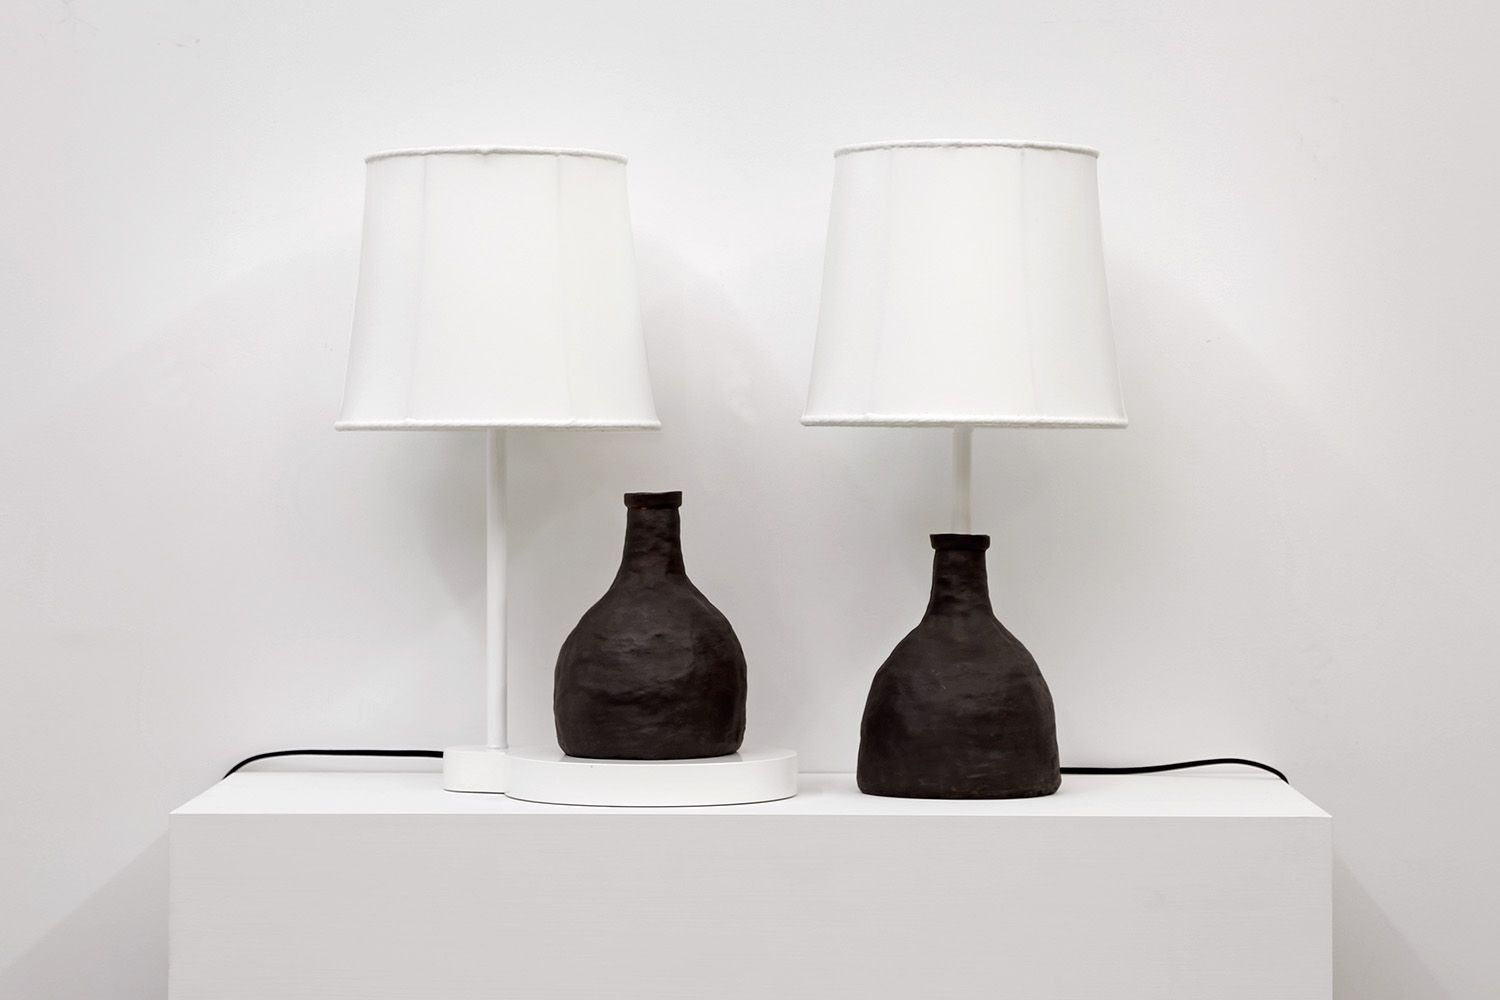 A Pair of Lamps With Bronze Vases Cast From a Vase I Bought a Long Time Ago, 2018, Bronze, enamel on poplar, steel, fabric